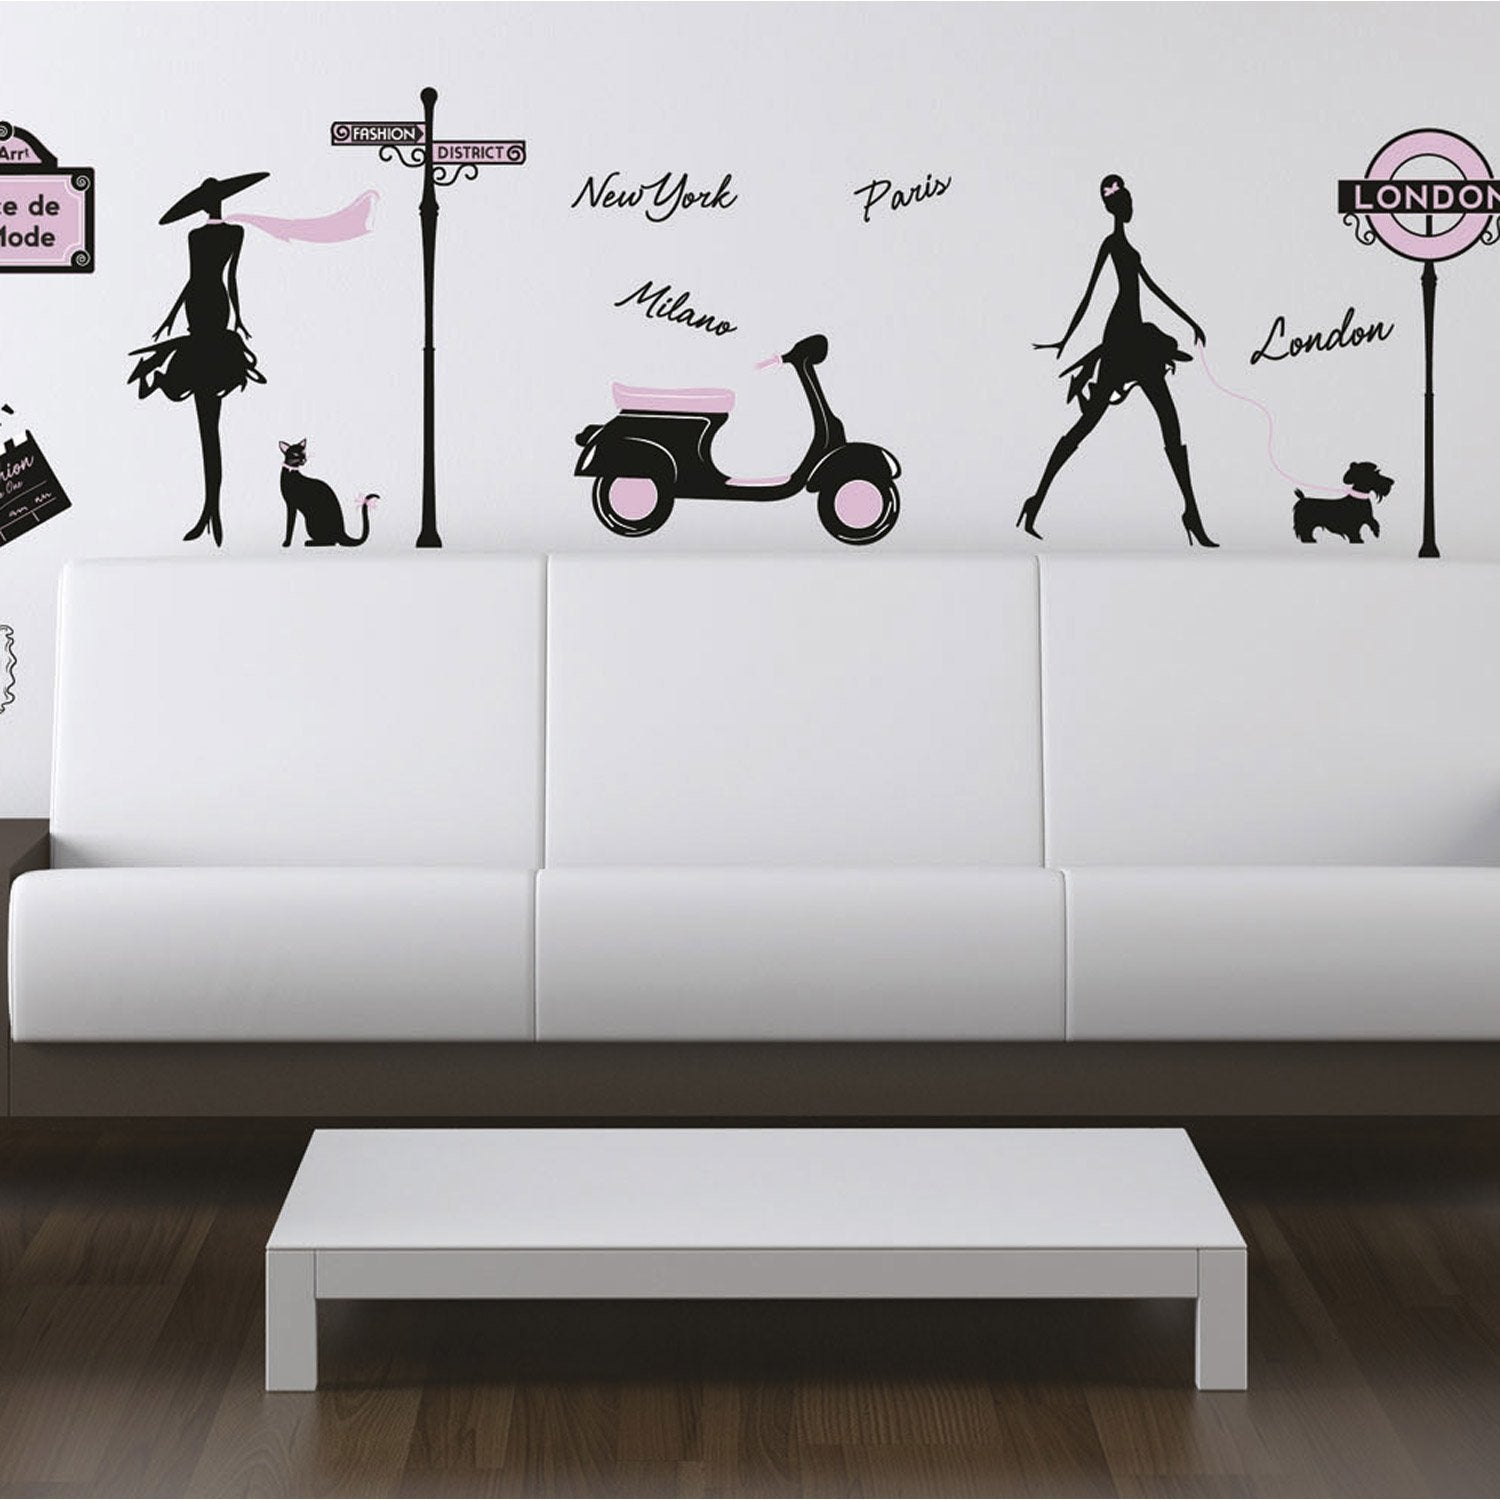 Sticker World fashion 50 cm x 70 cm  Leroy Merlin